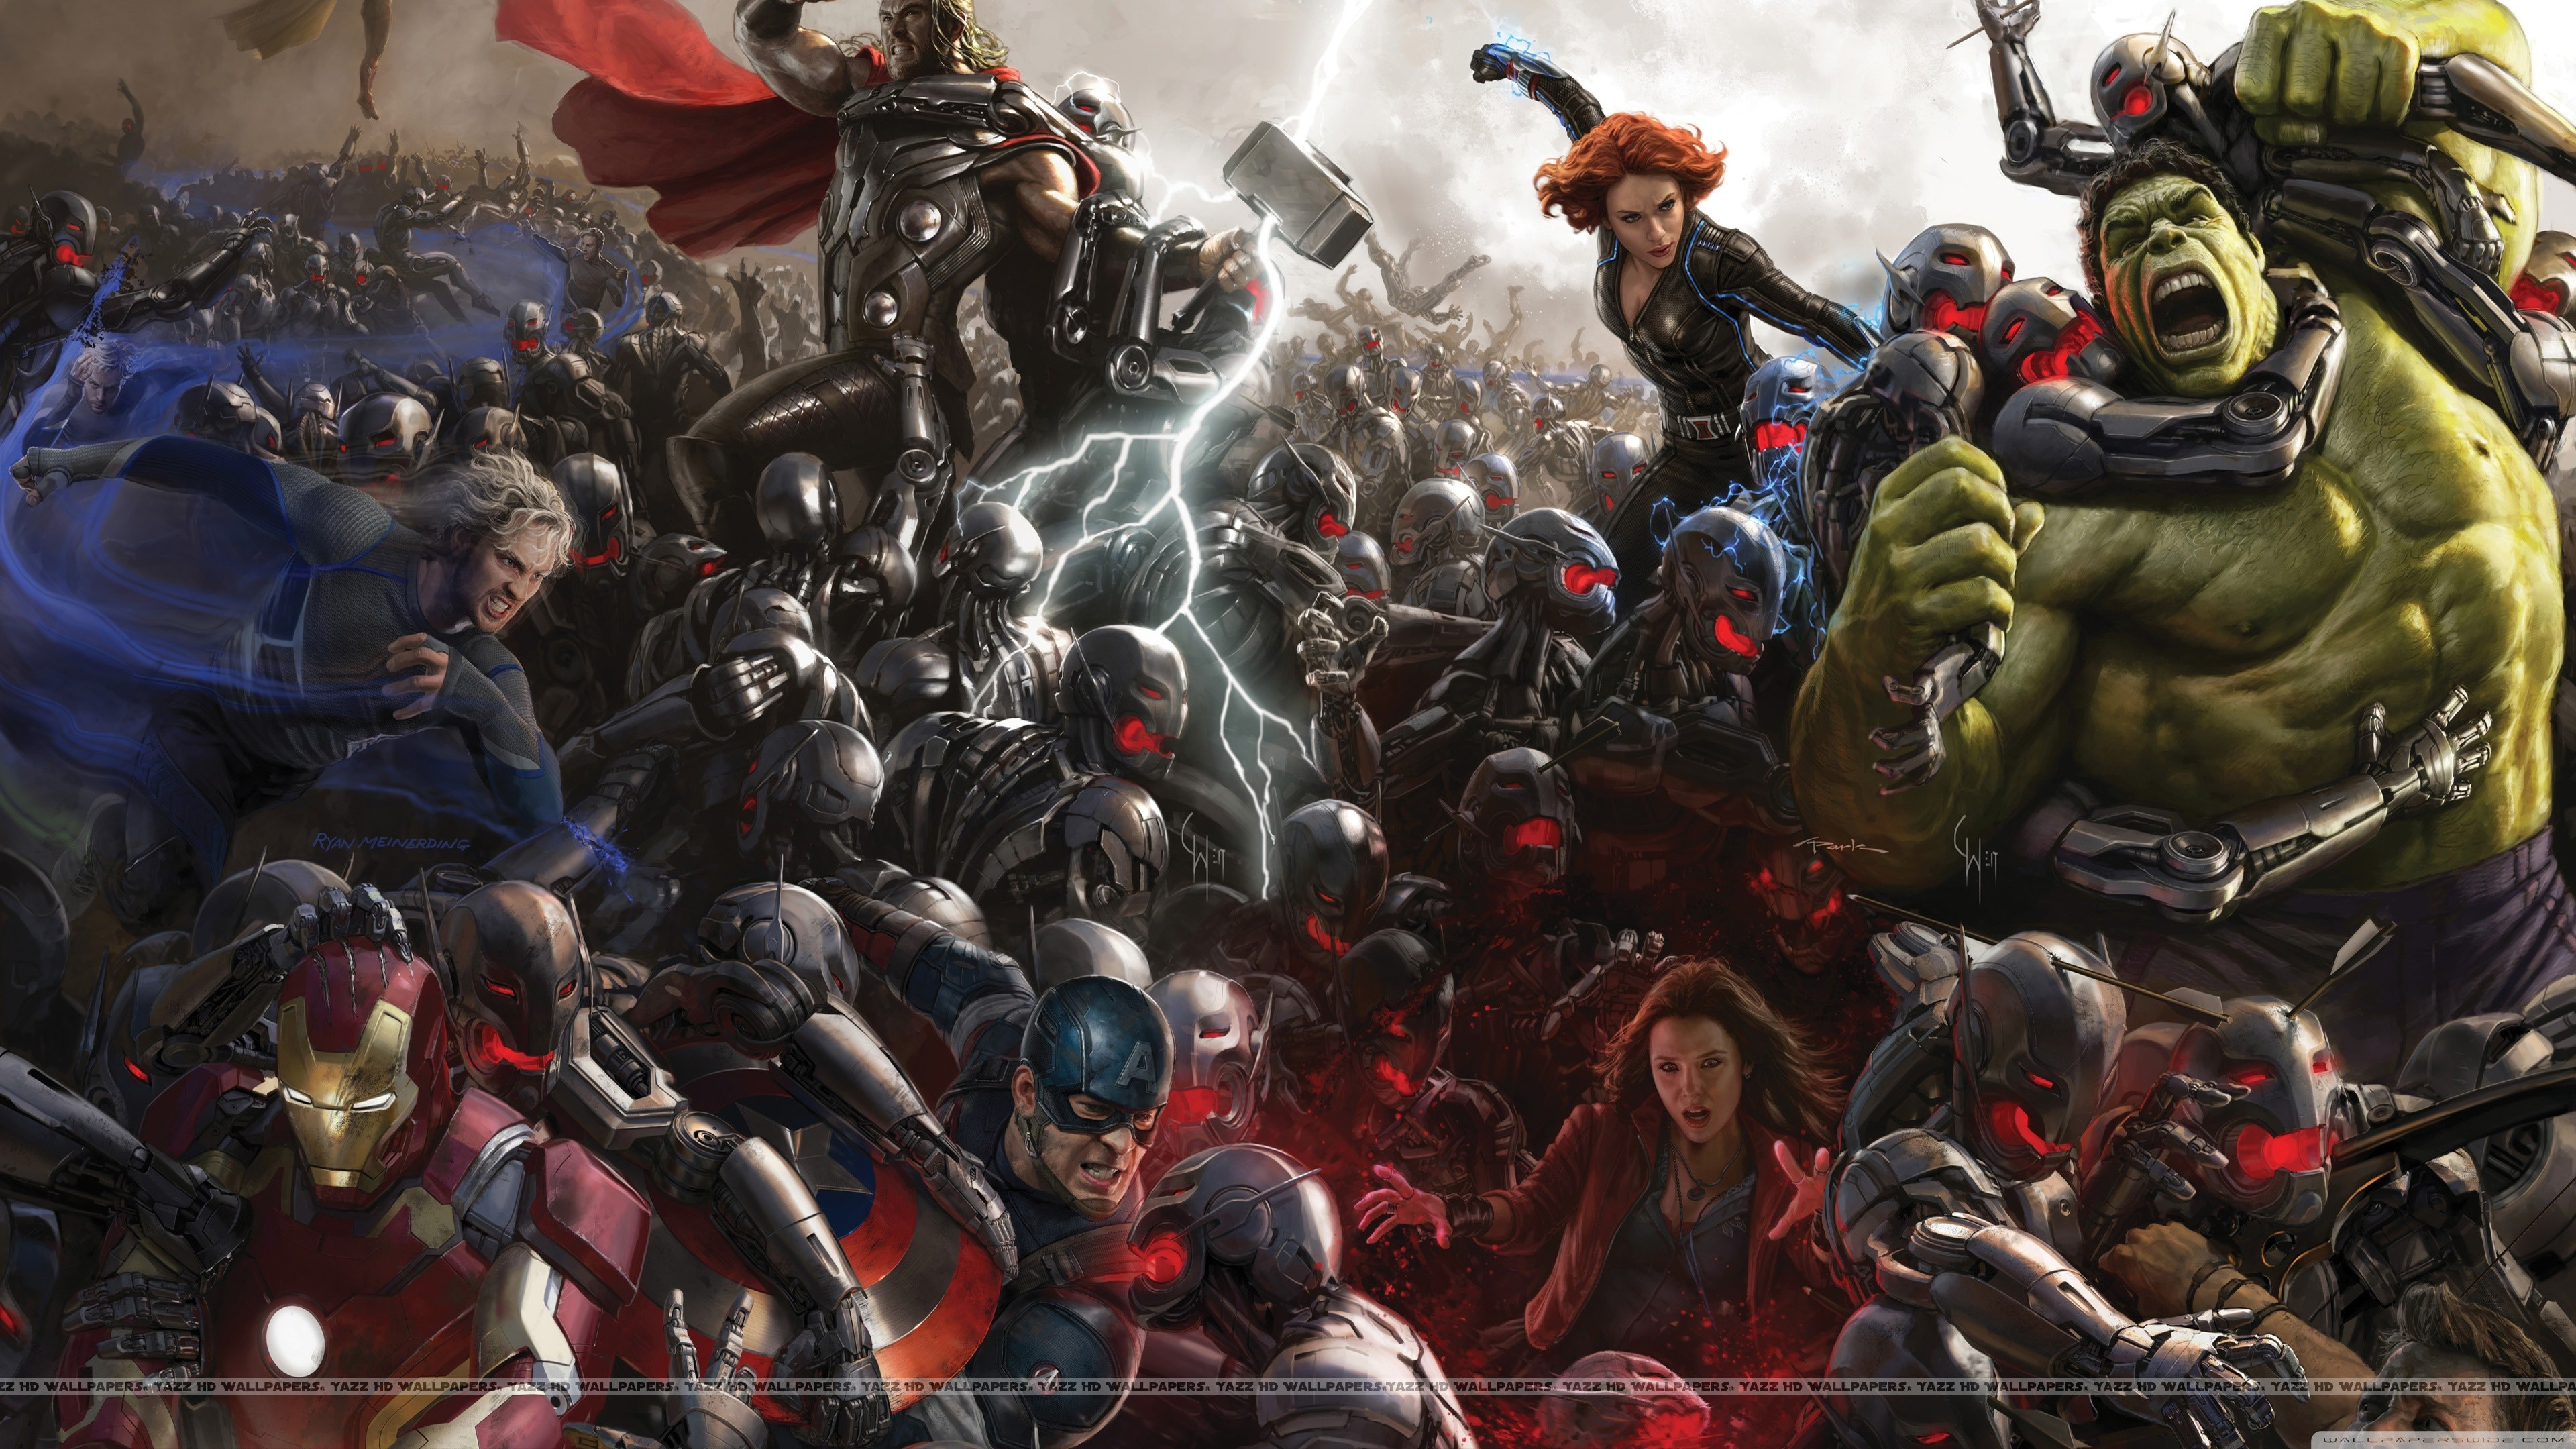 Avengers Wallpaper ① Download Free Amazing Full Hd Wallpapers Of